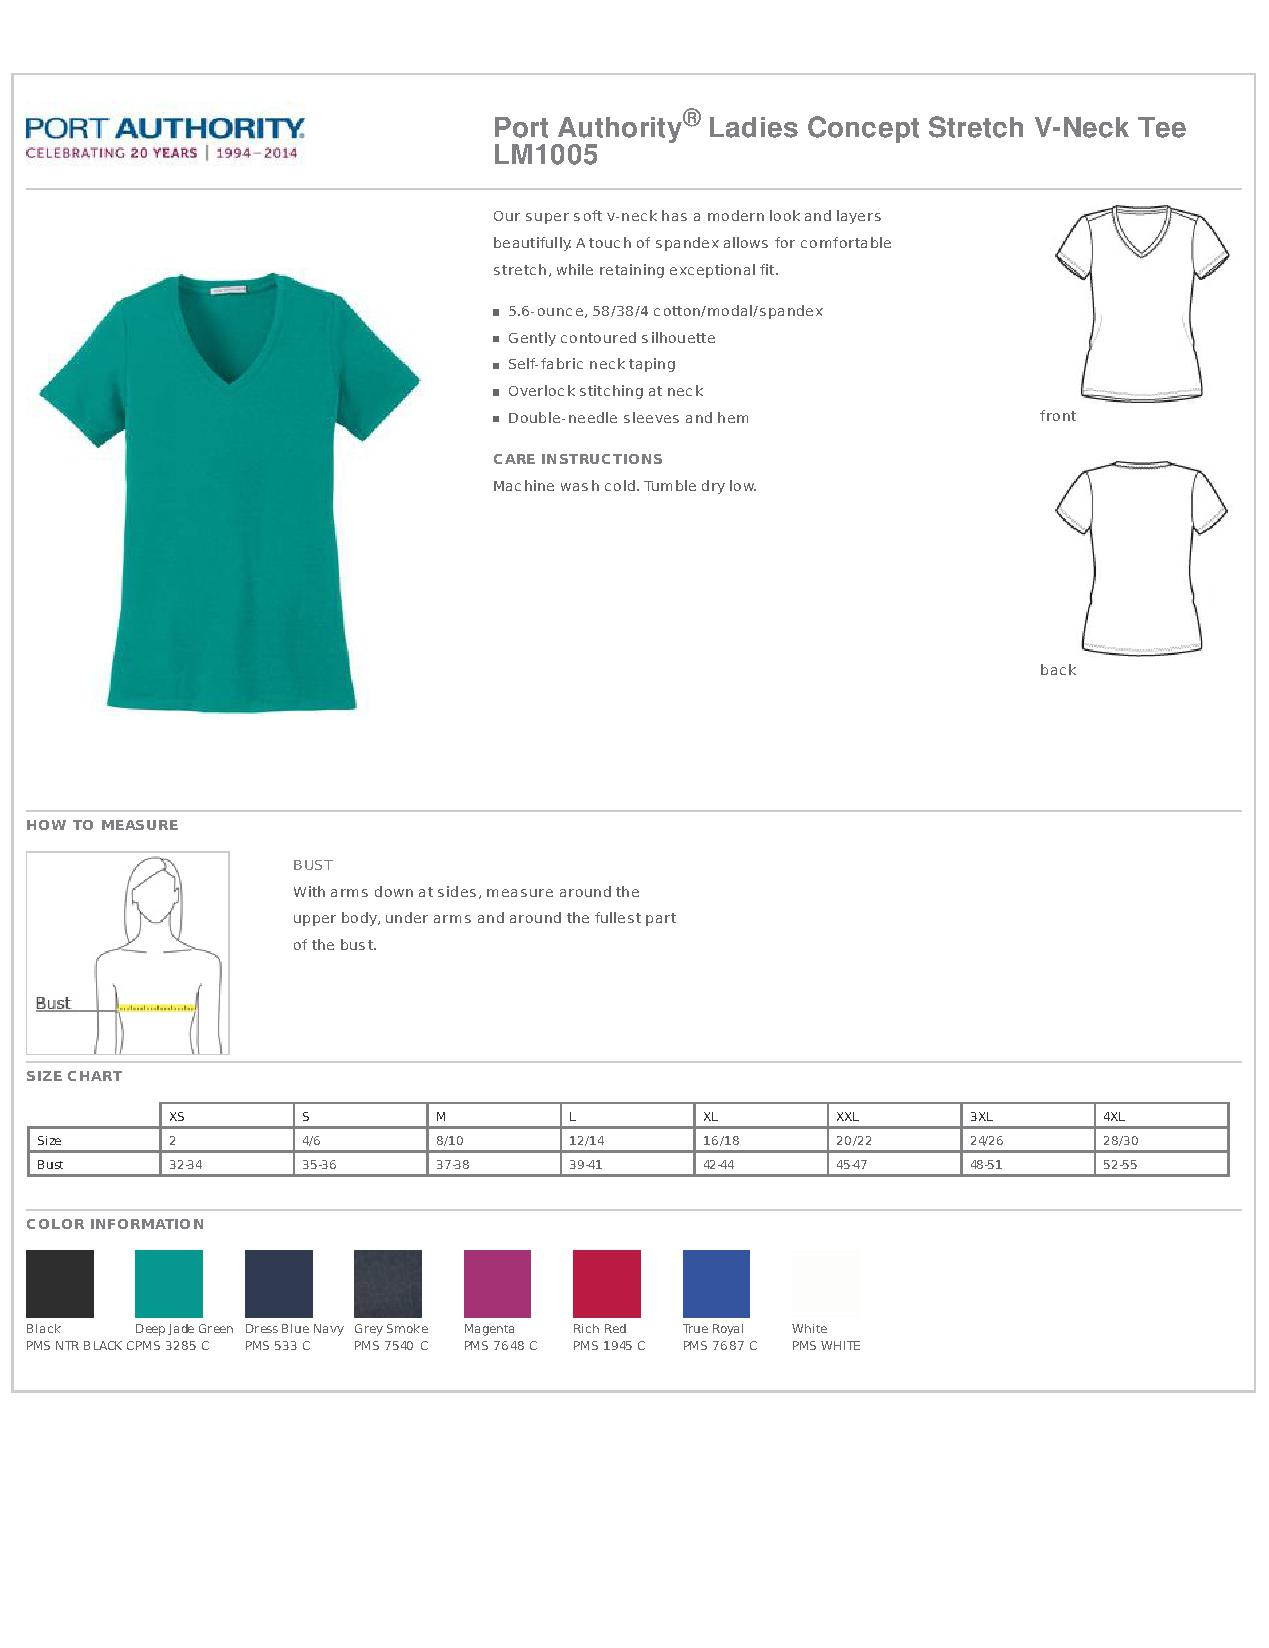 f243261f81c3 Port Authority LM1005 Ladies Concept Stretch V-Neck Tee - Women's T ...